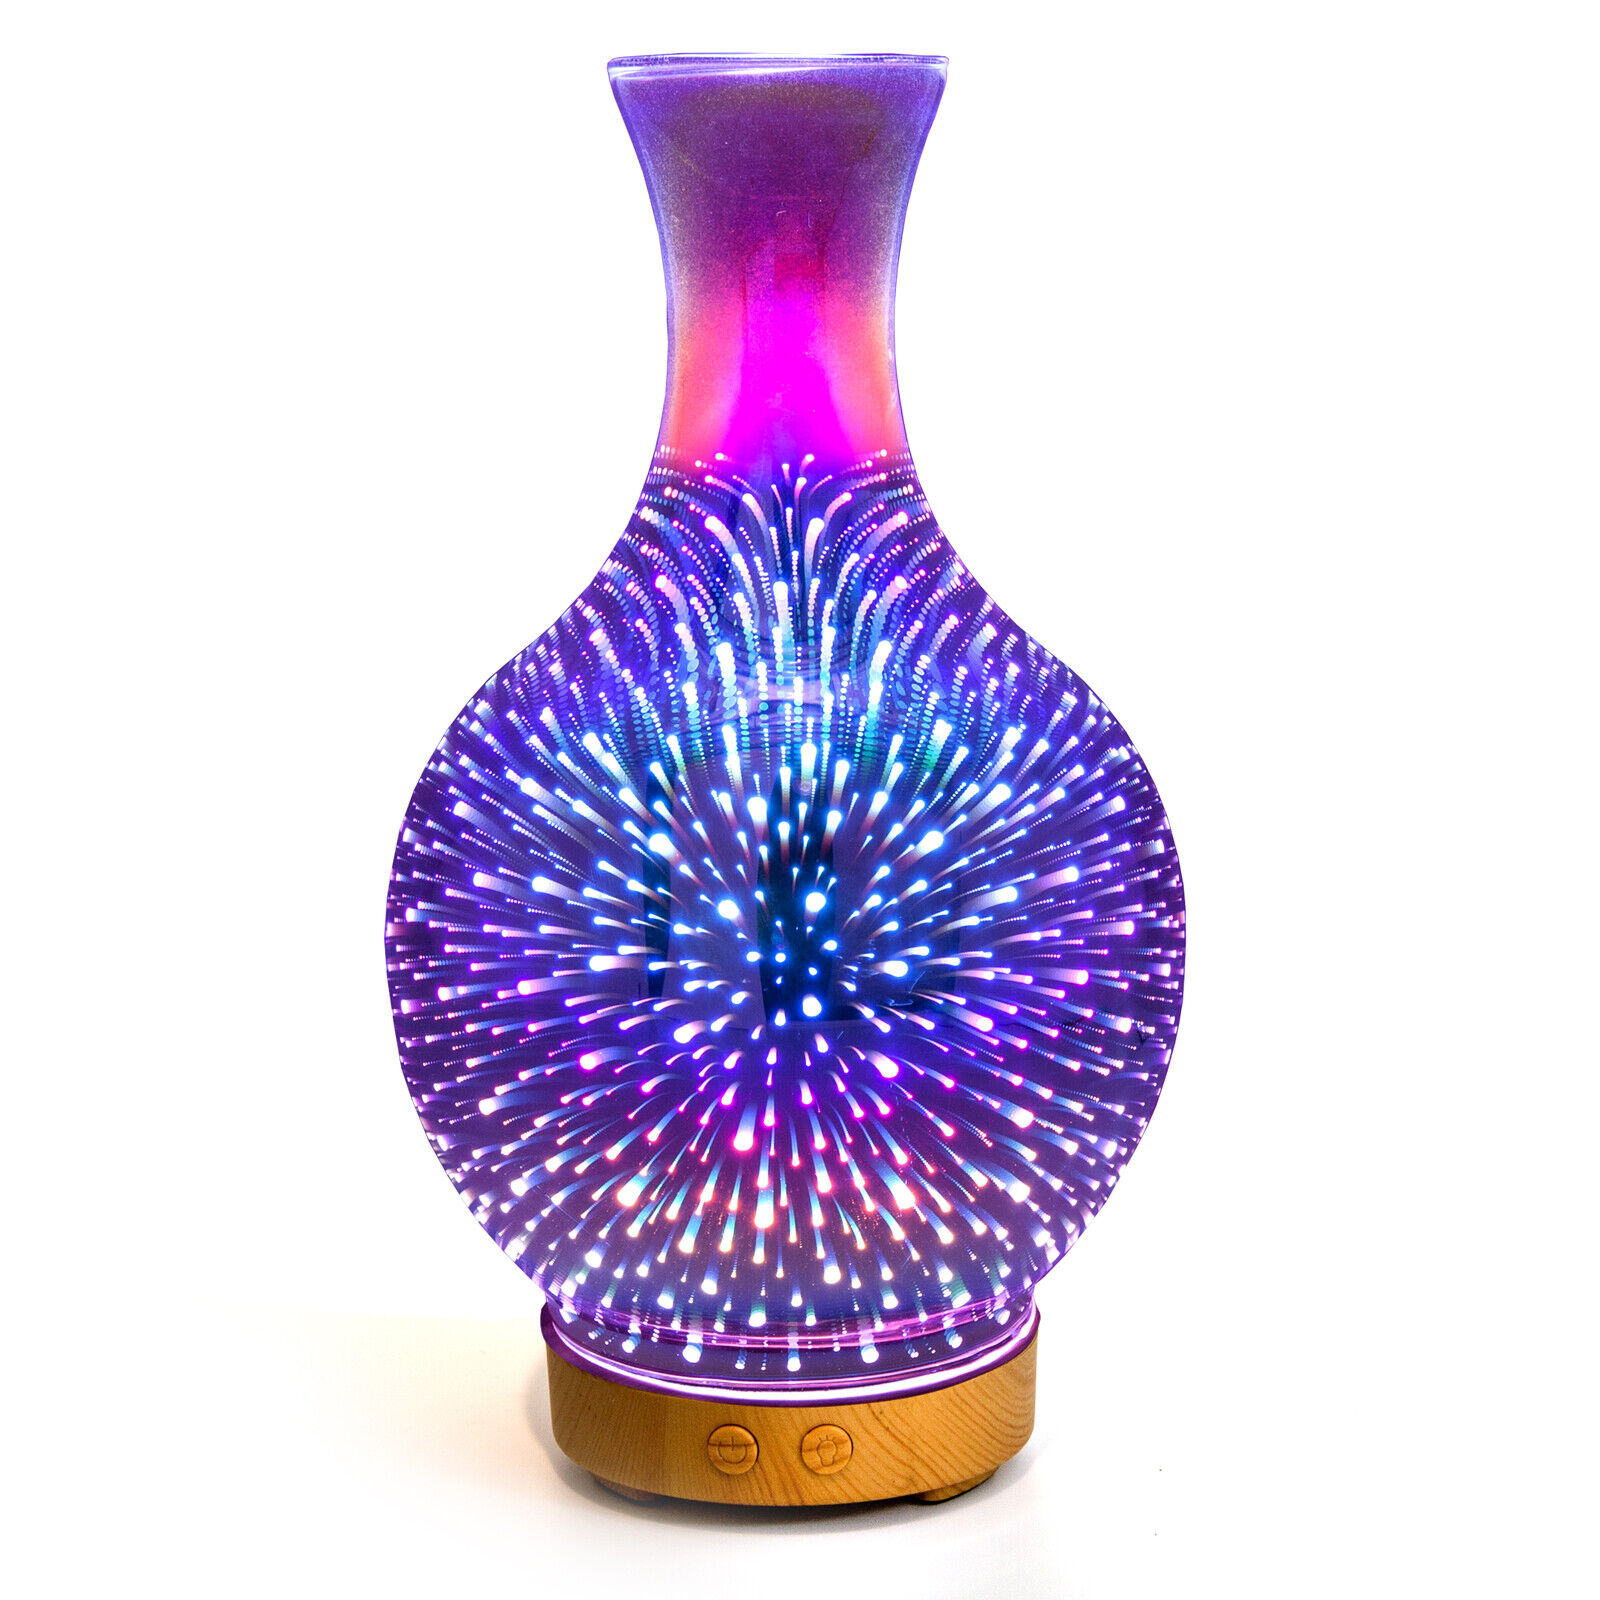 3D Aromatherapy Essential Oil Diffuser Ultrasonic Aroma Humi